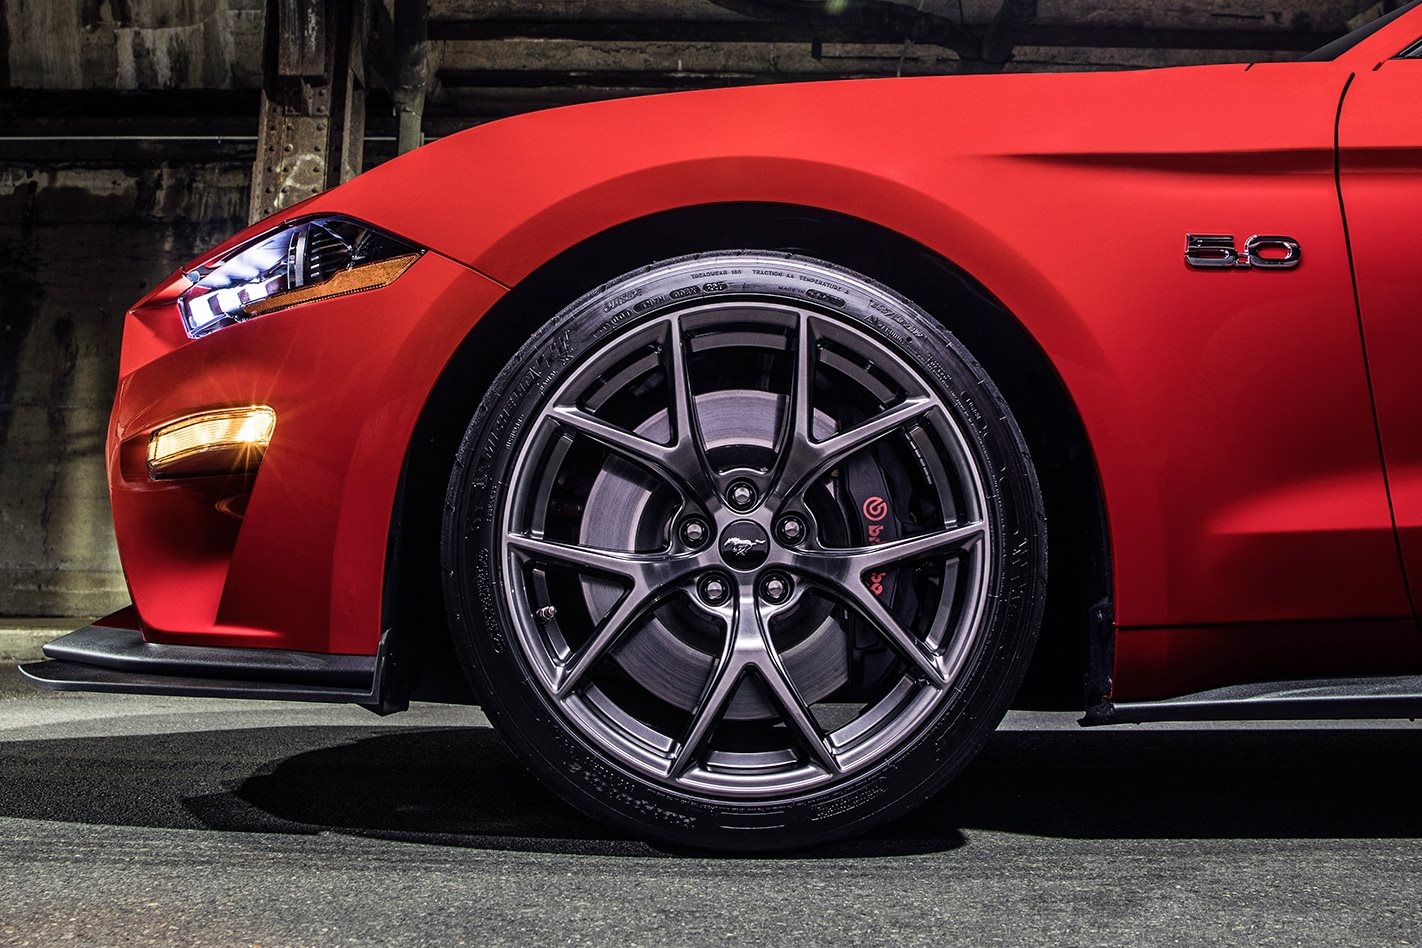 2018-Ford-Mustang-Performance-Pack-wheel.jpg